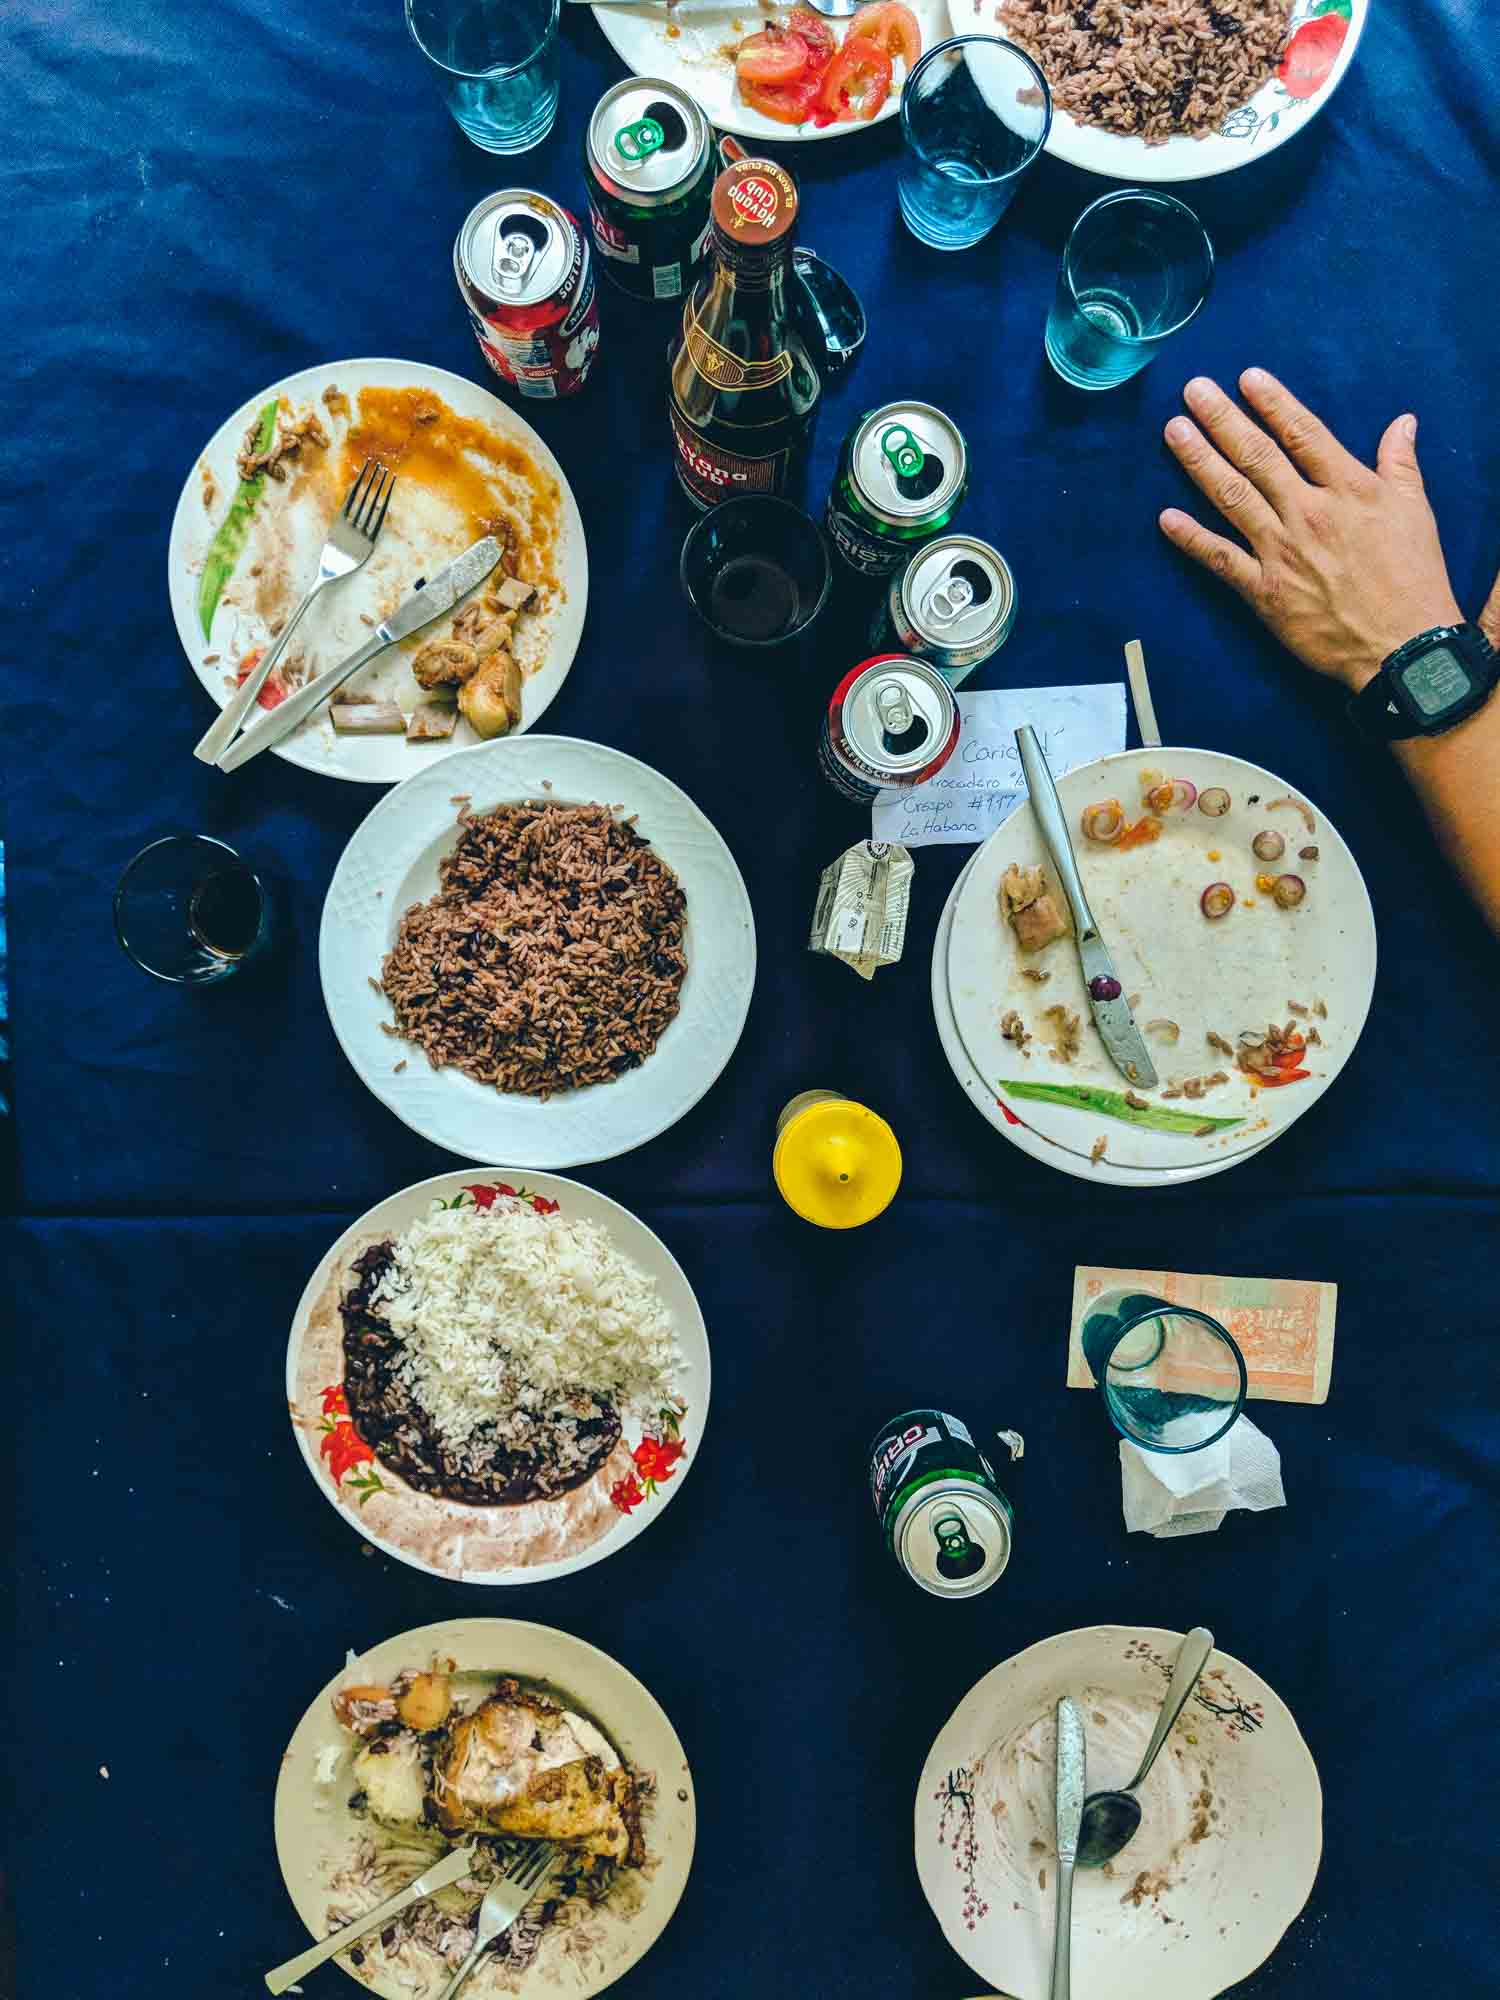 Havana restaurants food on dark blue tablecloth